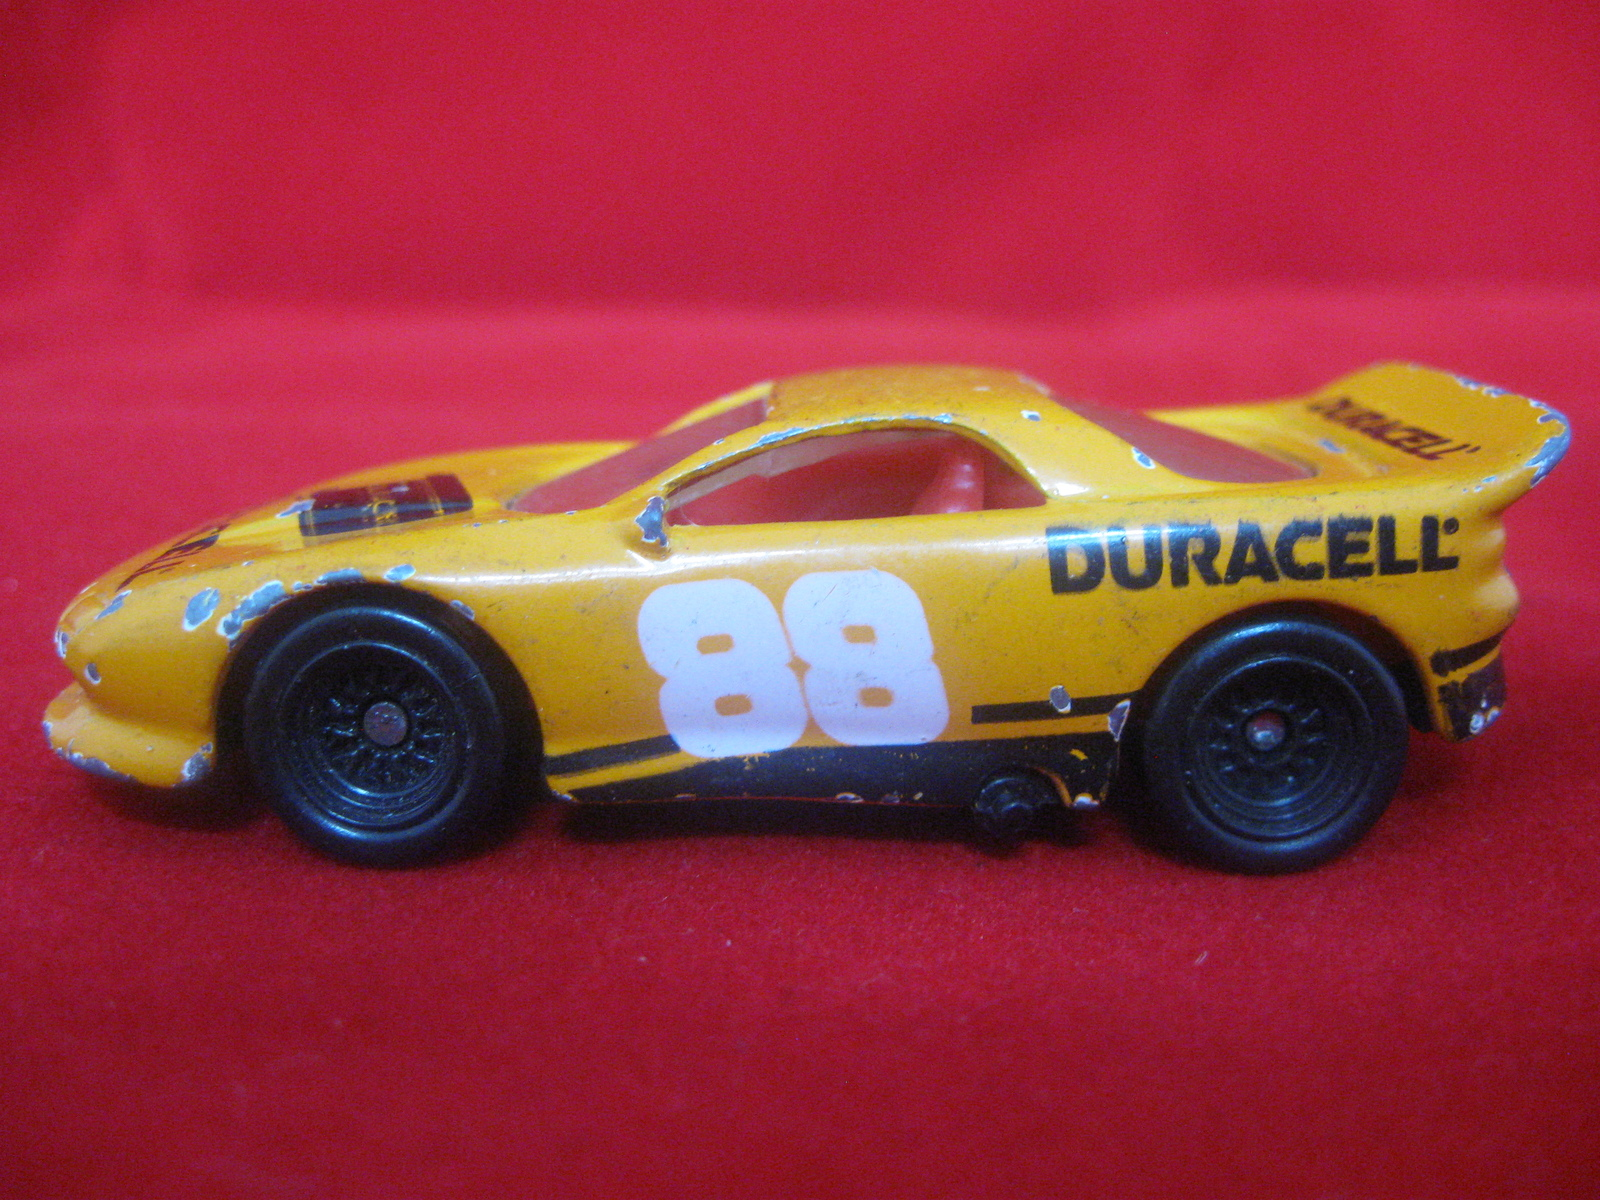 hot wheels 1993 duracell 88 diecast race car contemporary manufacture. Black Bedroom Furniture Sets. Home Design Ideas